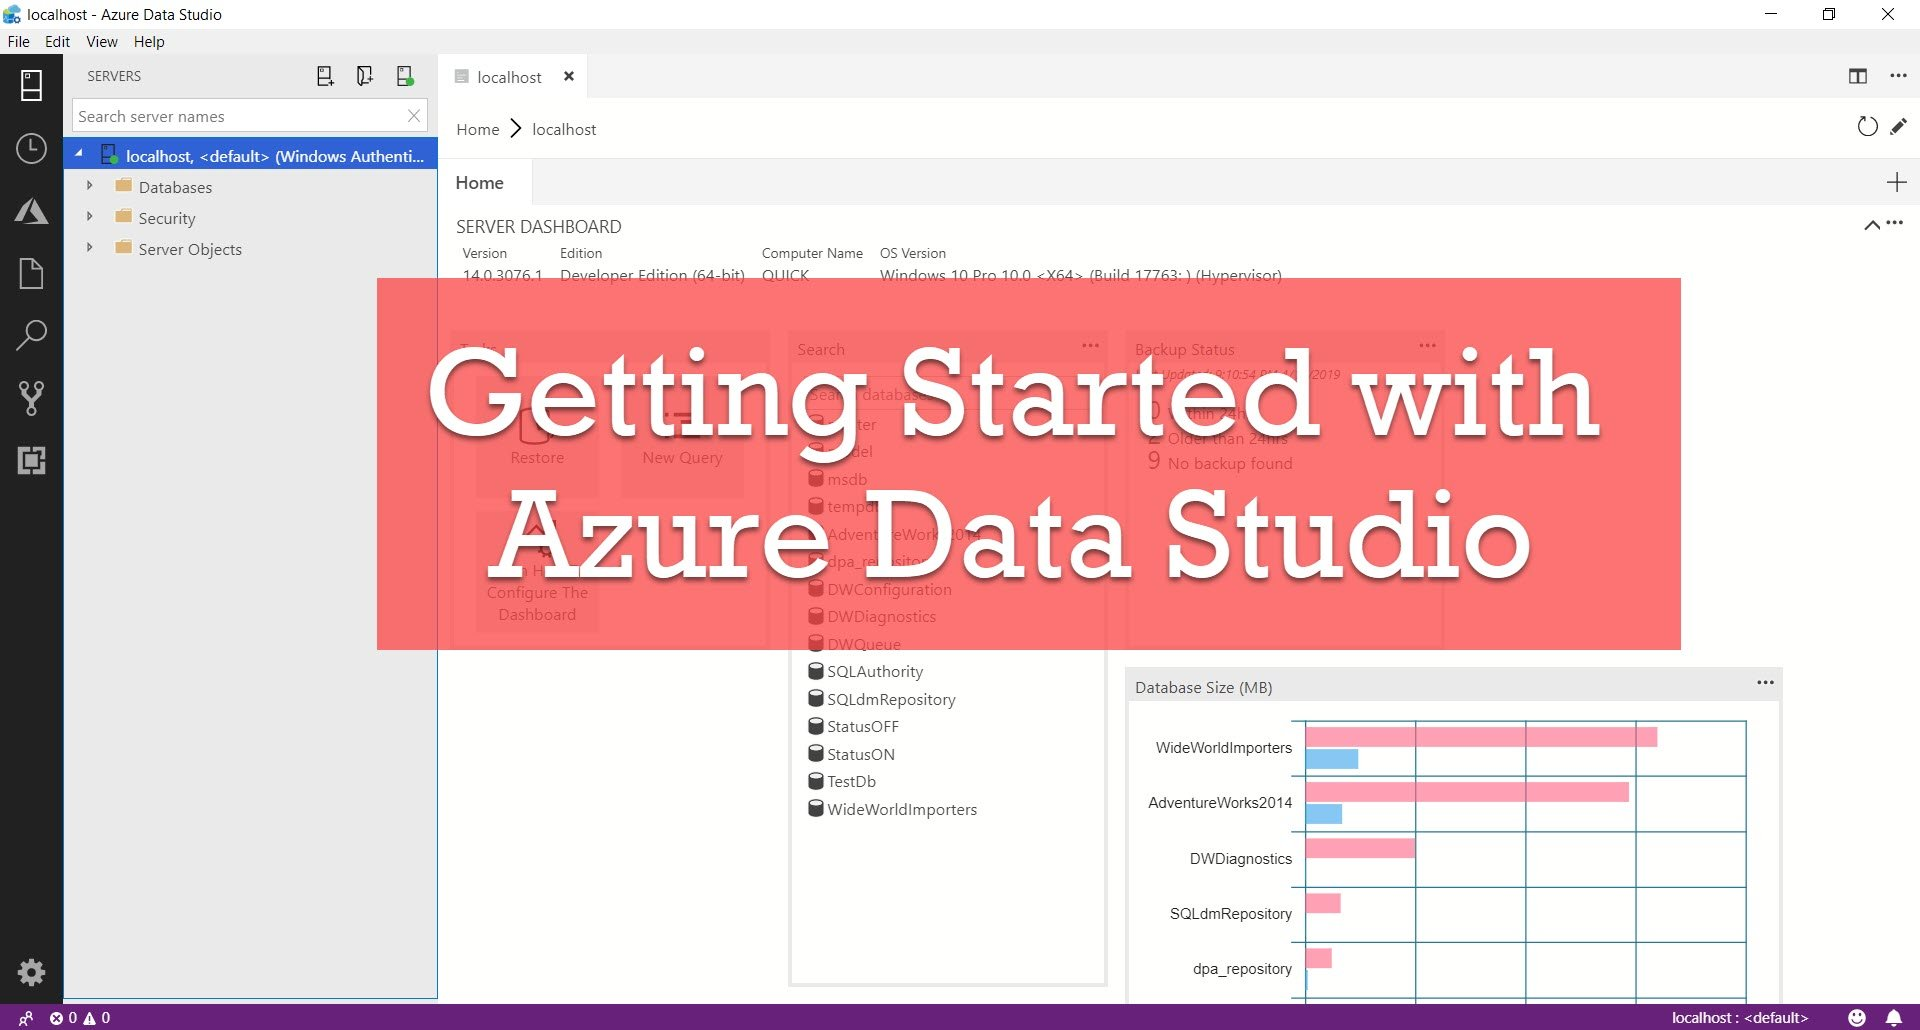 SQL SERVER - Getting Started with Azure Data Studio azuredatastudio